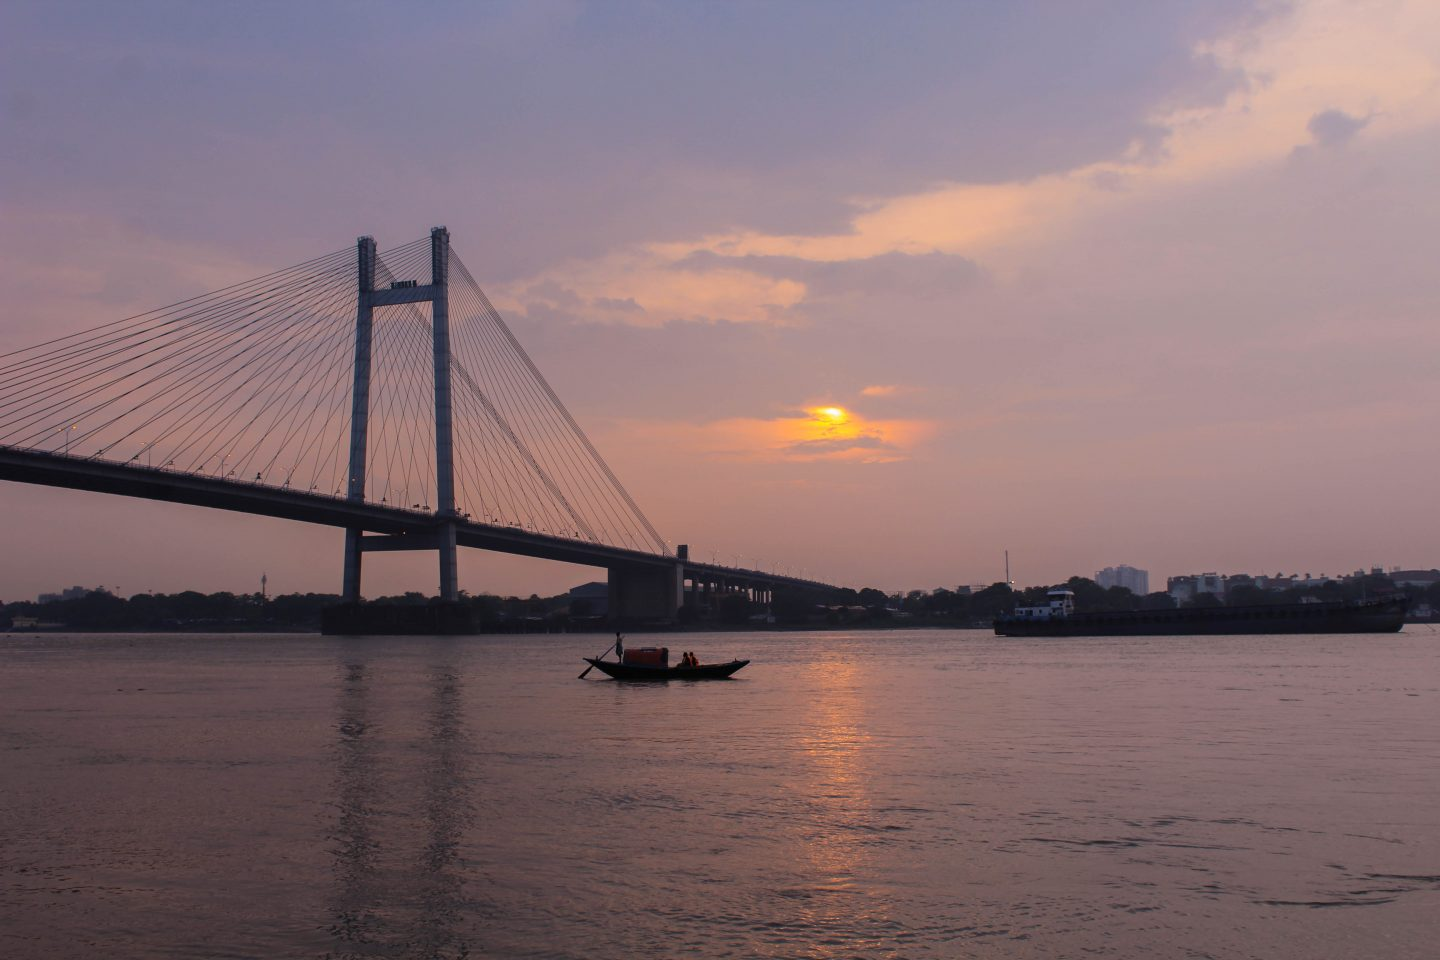 Viewing sunset on River Hooghly from Princep Ghat in Calcutta